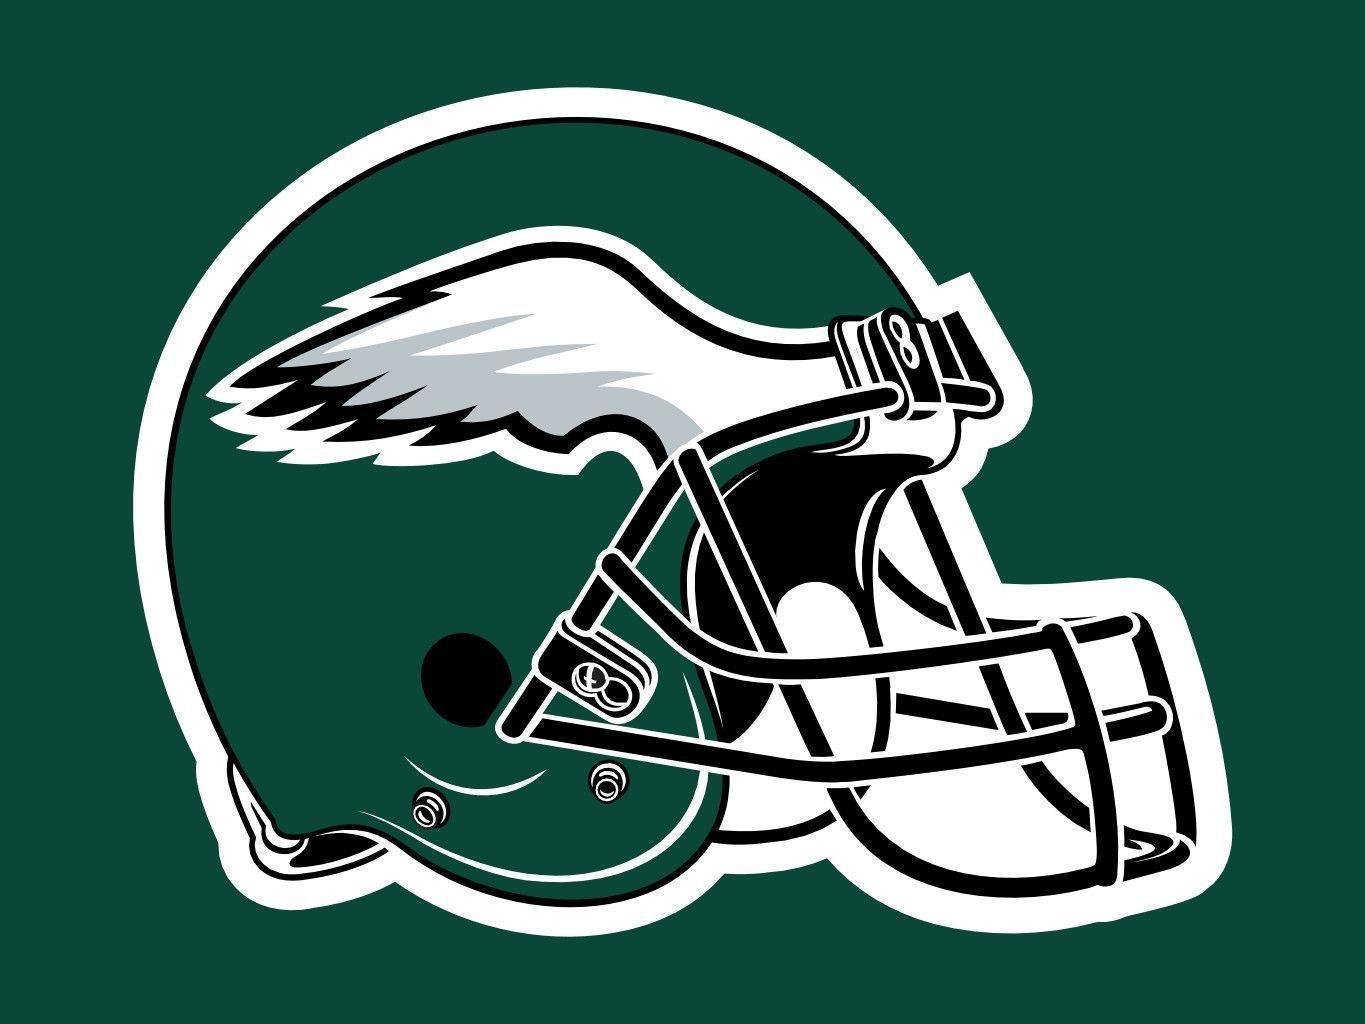 Philadelphia Eagles Cool Wallpapers 26047 Images | largepict.